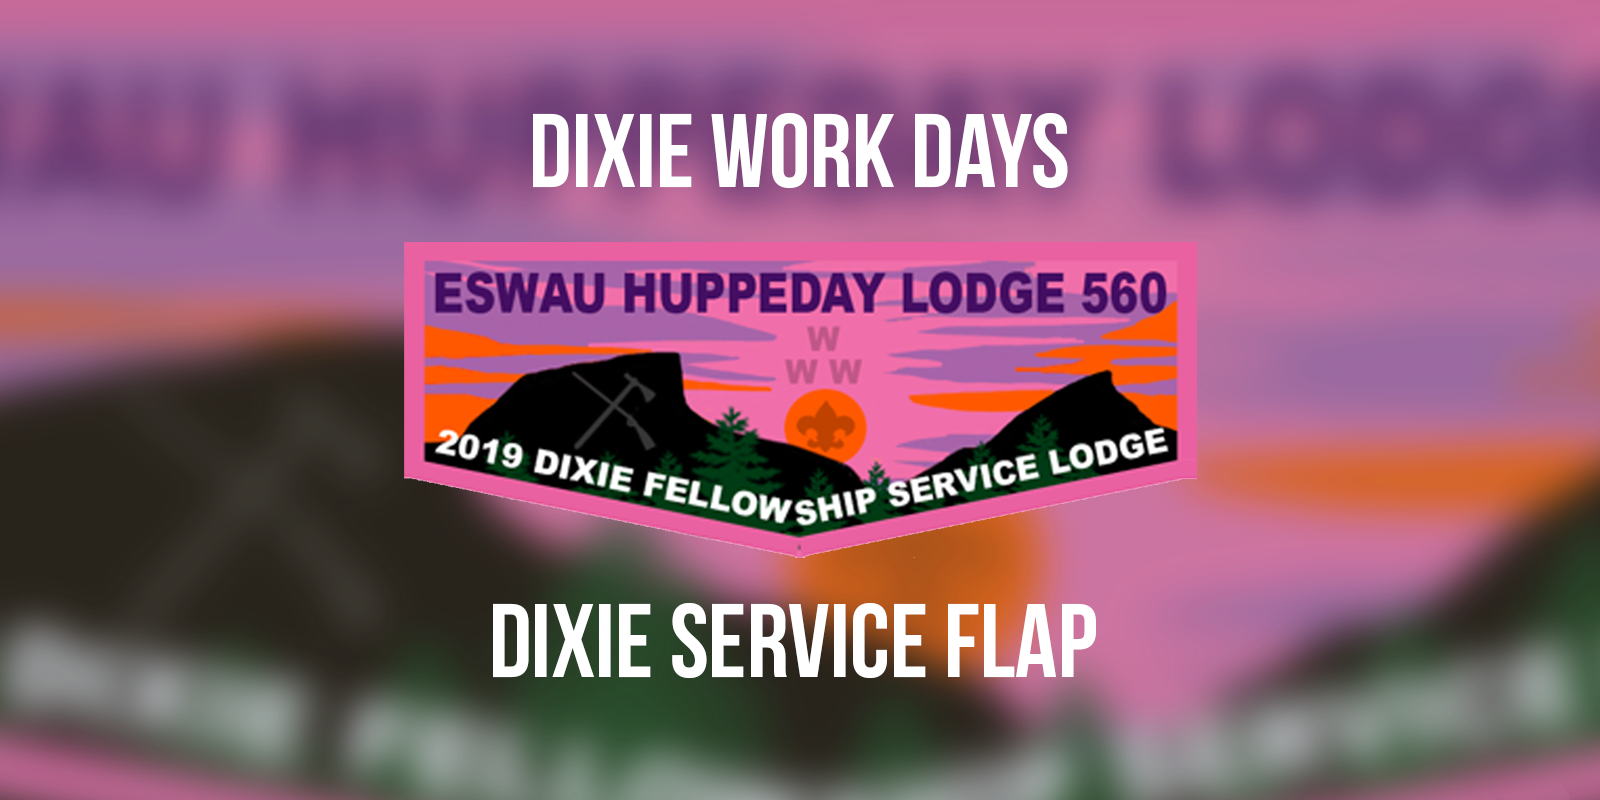 2019-dixie-work-days-and-flap